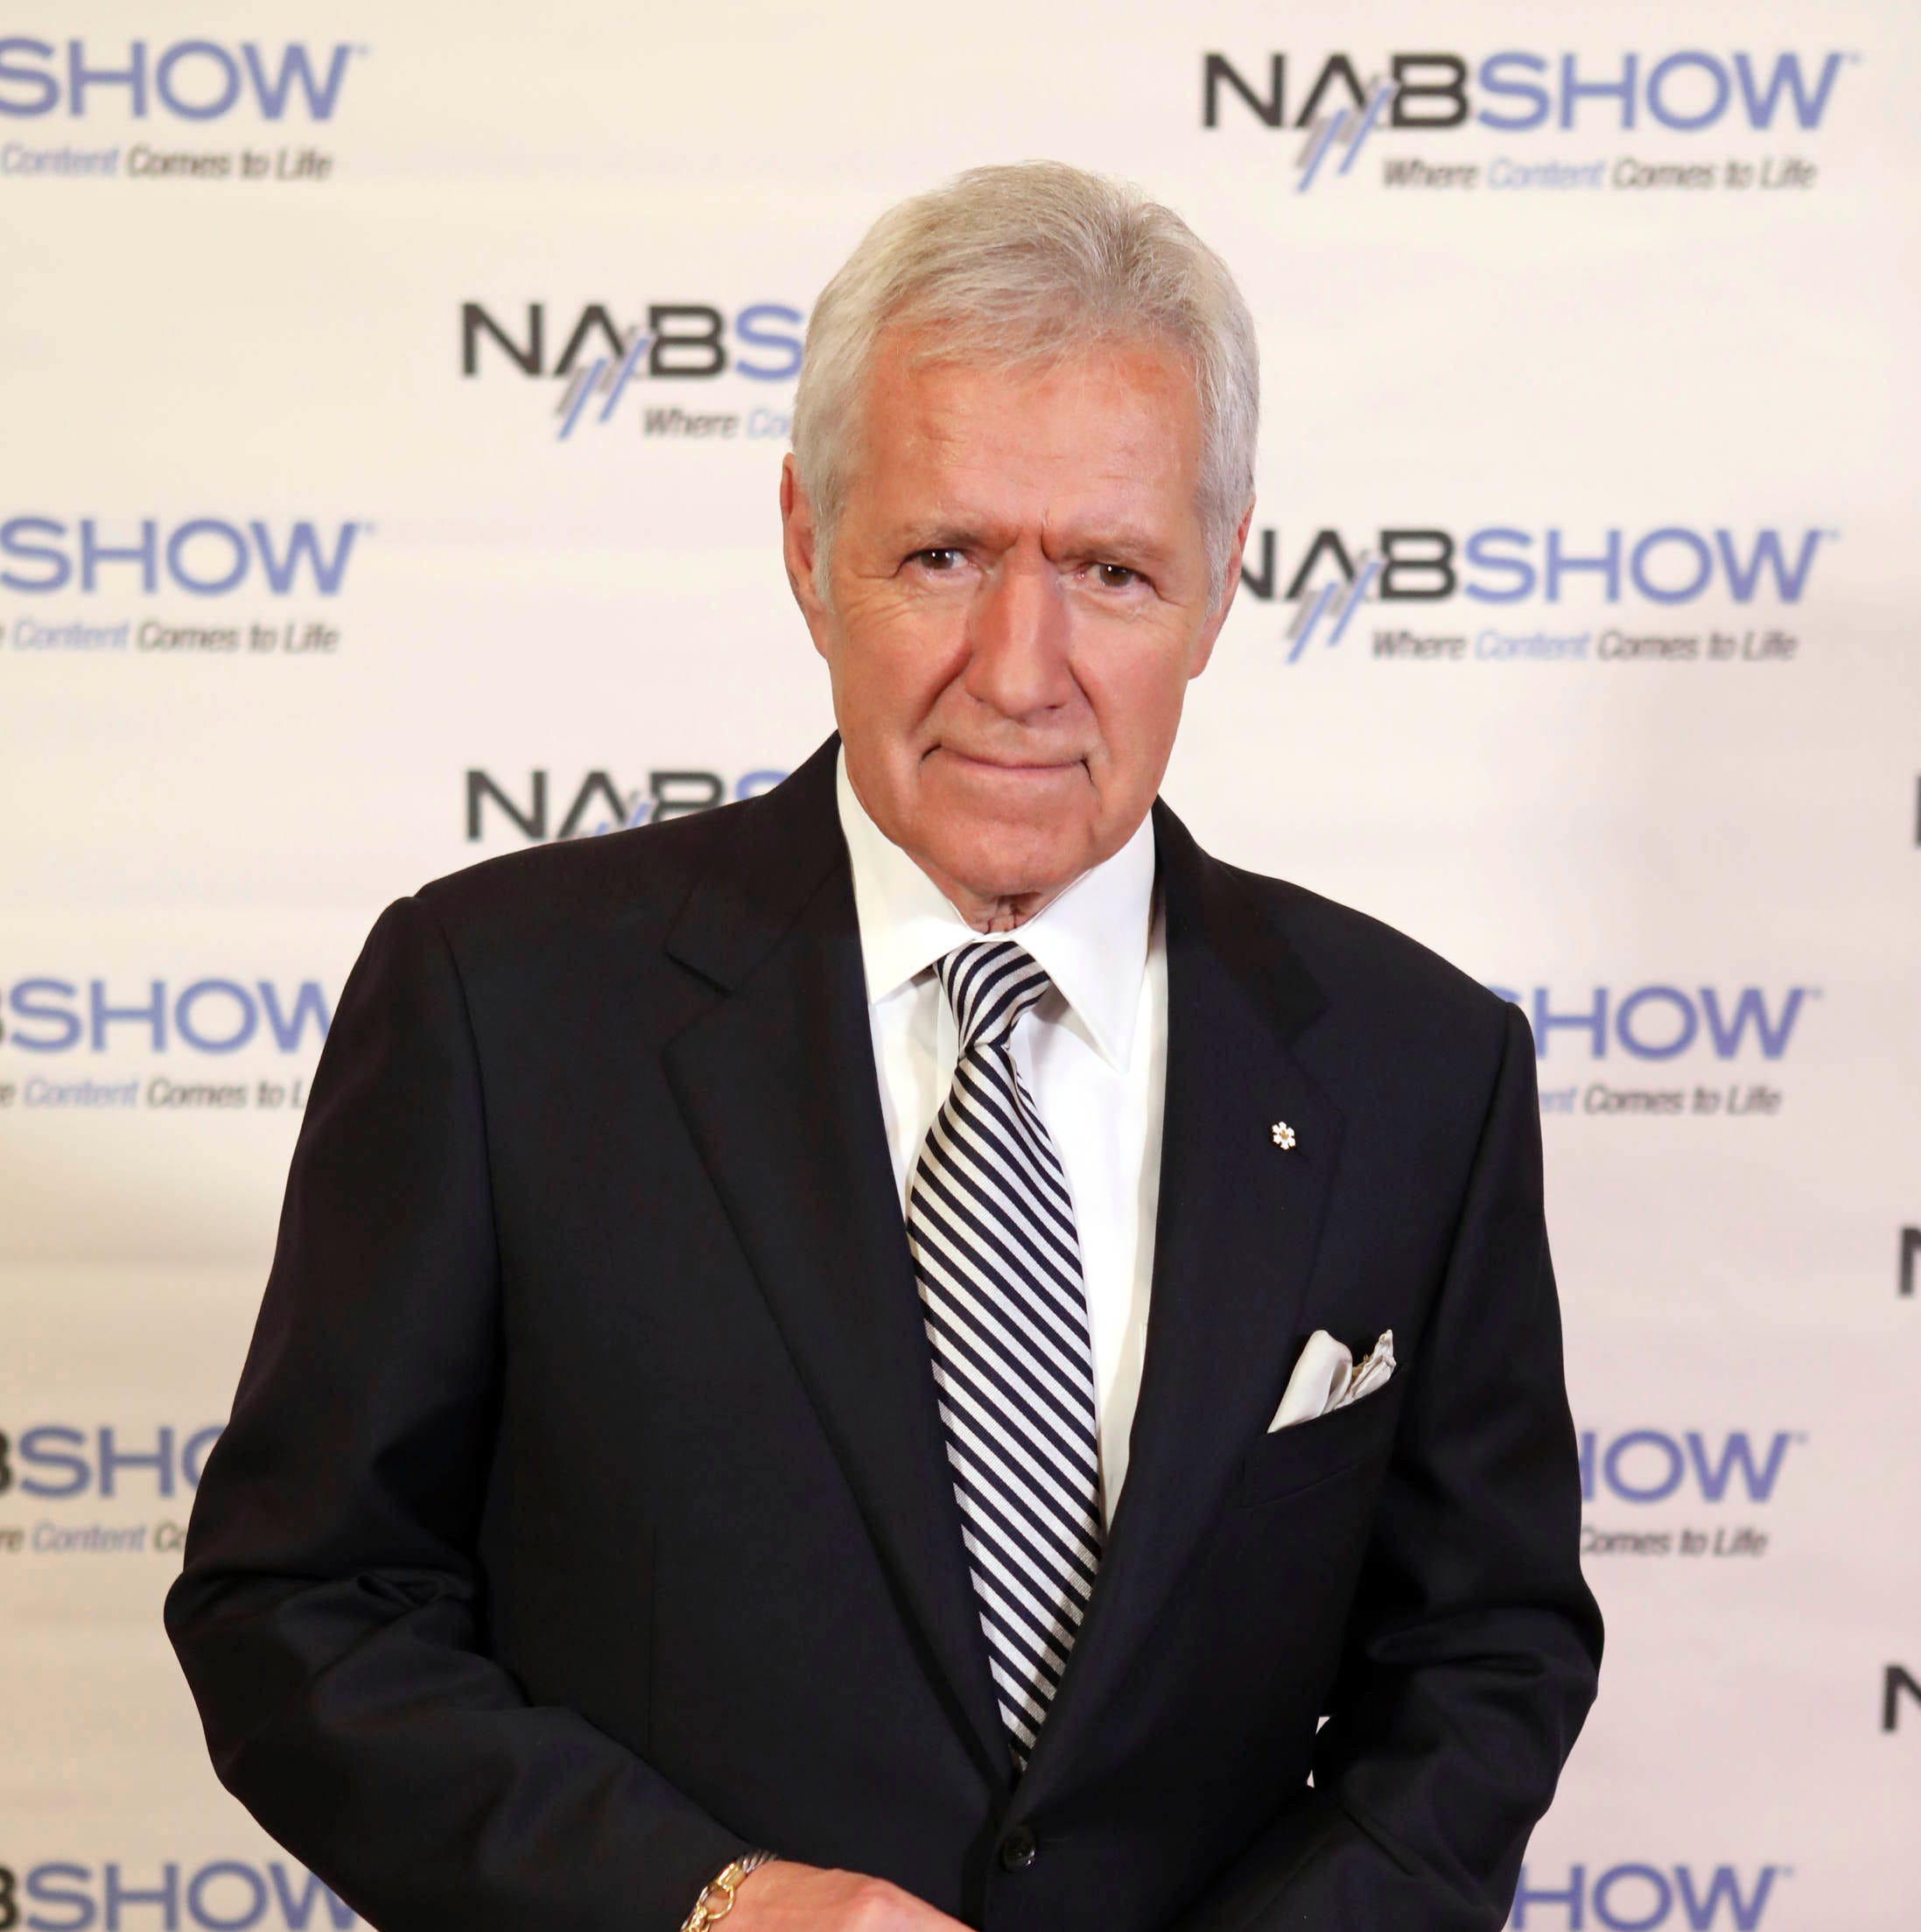 Alex Trebek: Talkative, opinionated and not very politically correct